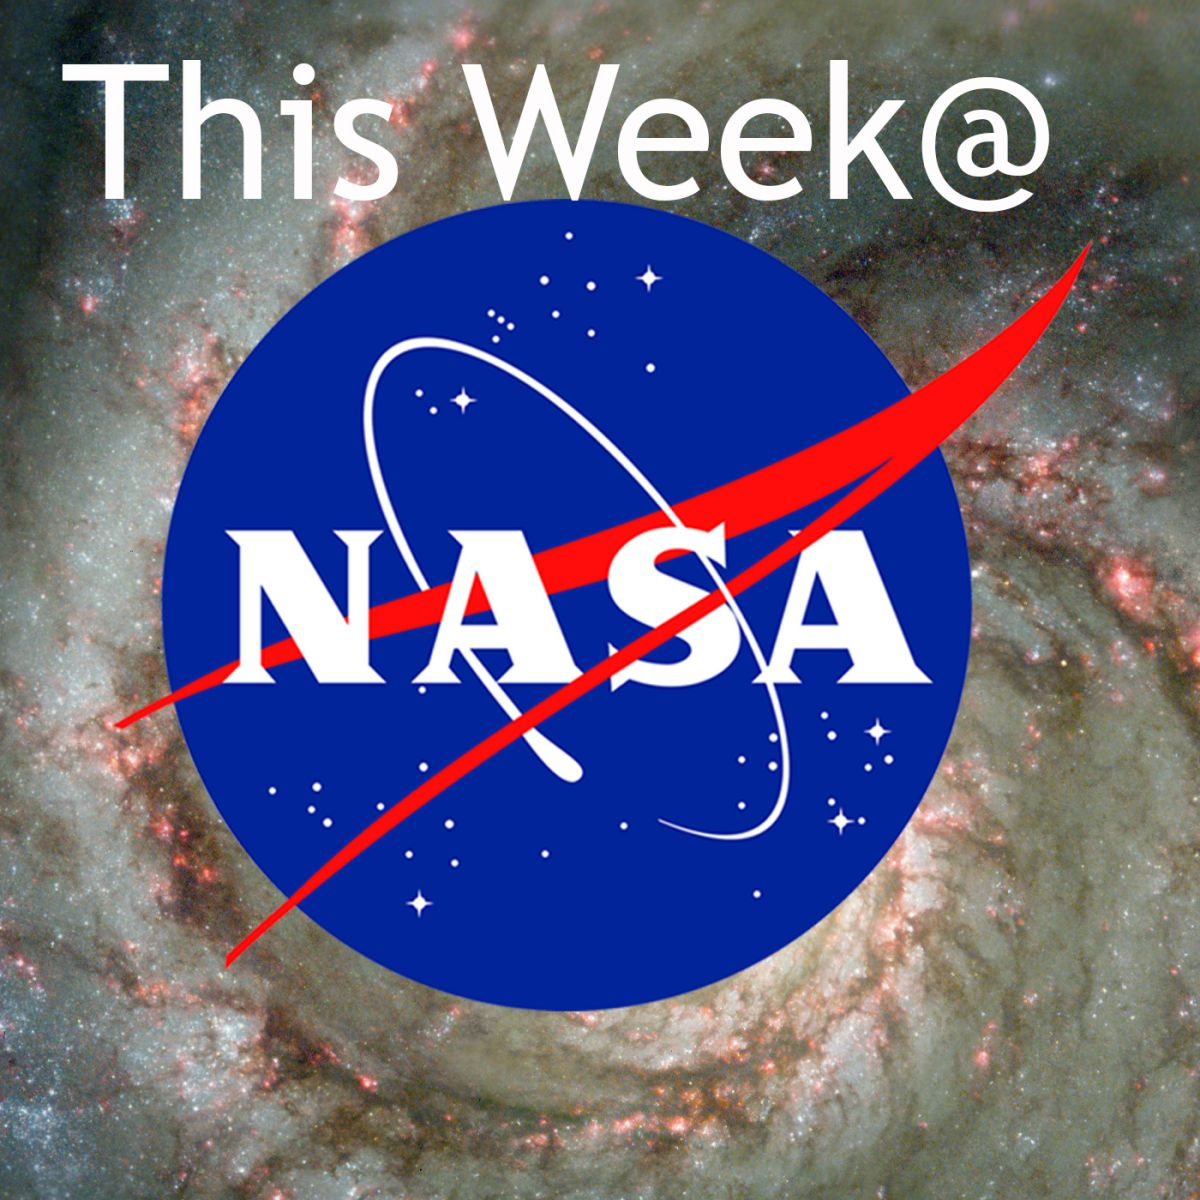 NASACast: This Week @NASA Audio